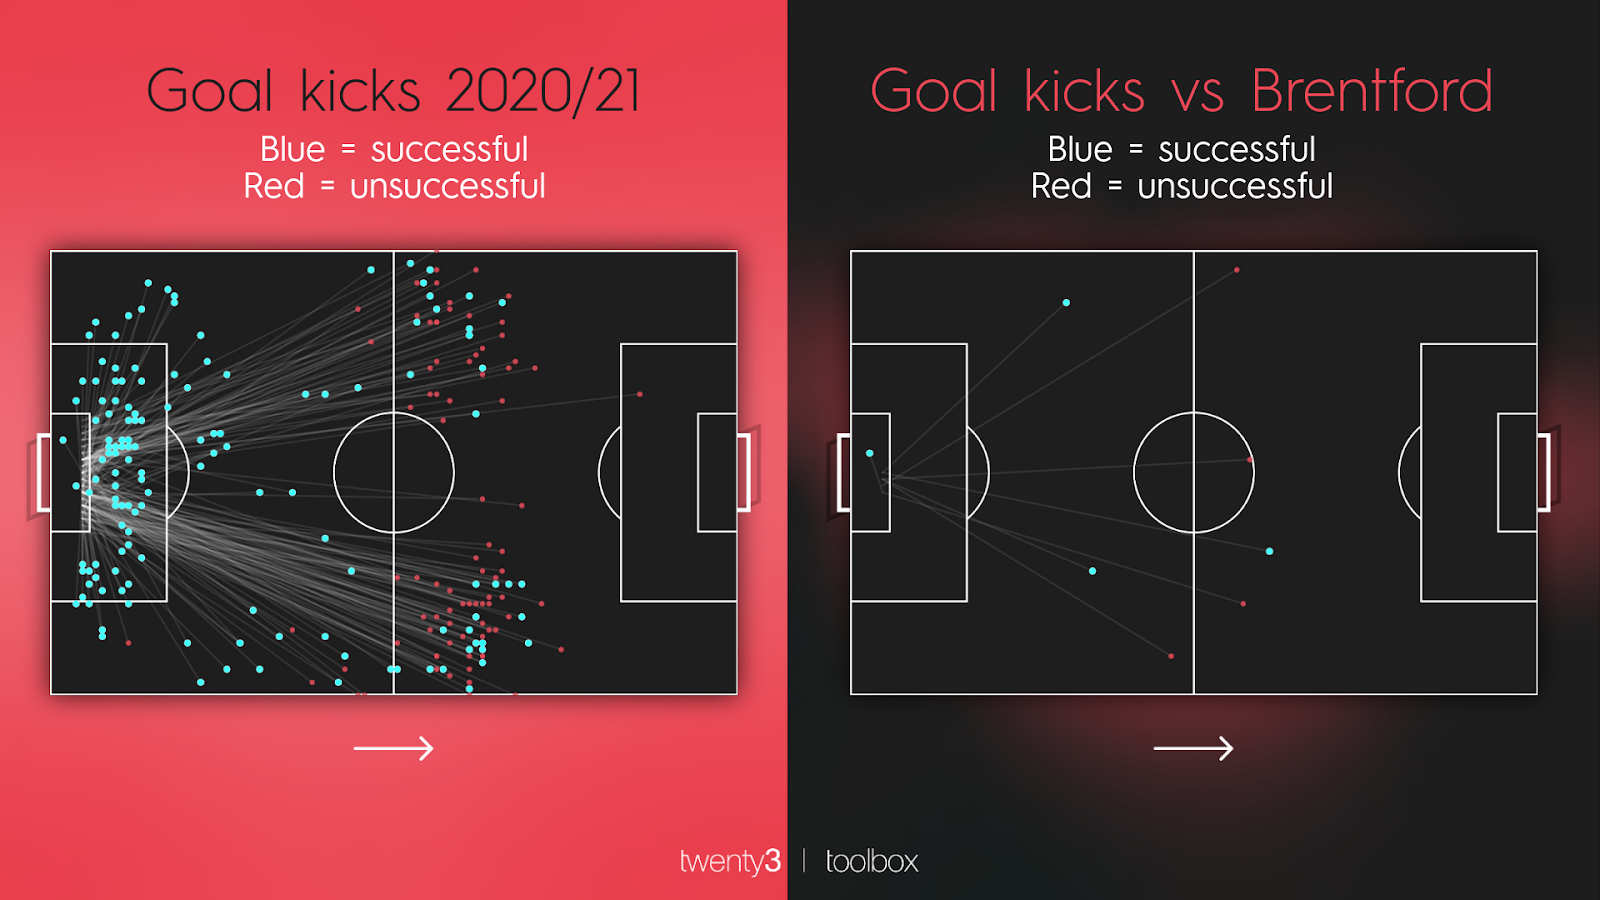 Arsenal's goal kick map during the 2020/21 campaign compared to their goal kick map against Brentford.